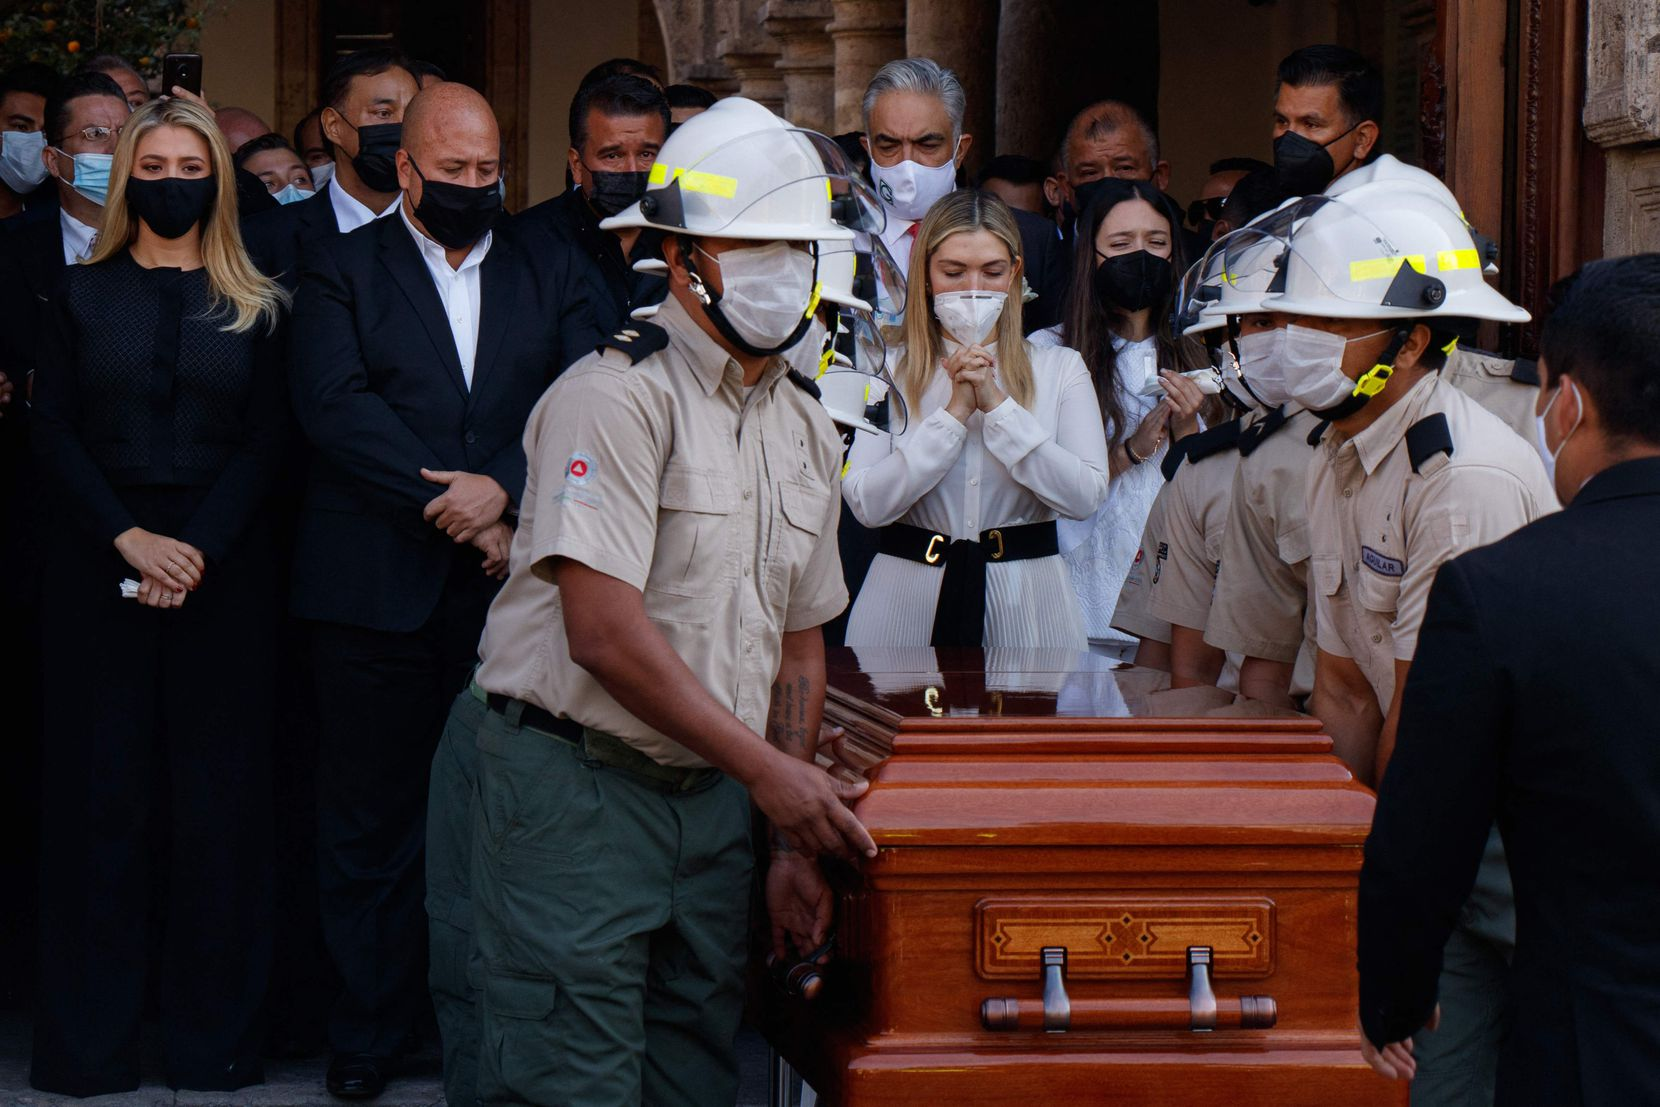 Relatives of the former Jalisco governor Aristoteles Sandoval, murdered in Puerto Vallarta, walk next to his coffin on the way to the Government Palace for a tribute, in Guadalajara, state of Jalisco, Mexico, on December 19, 2020.